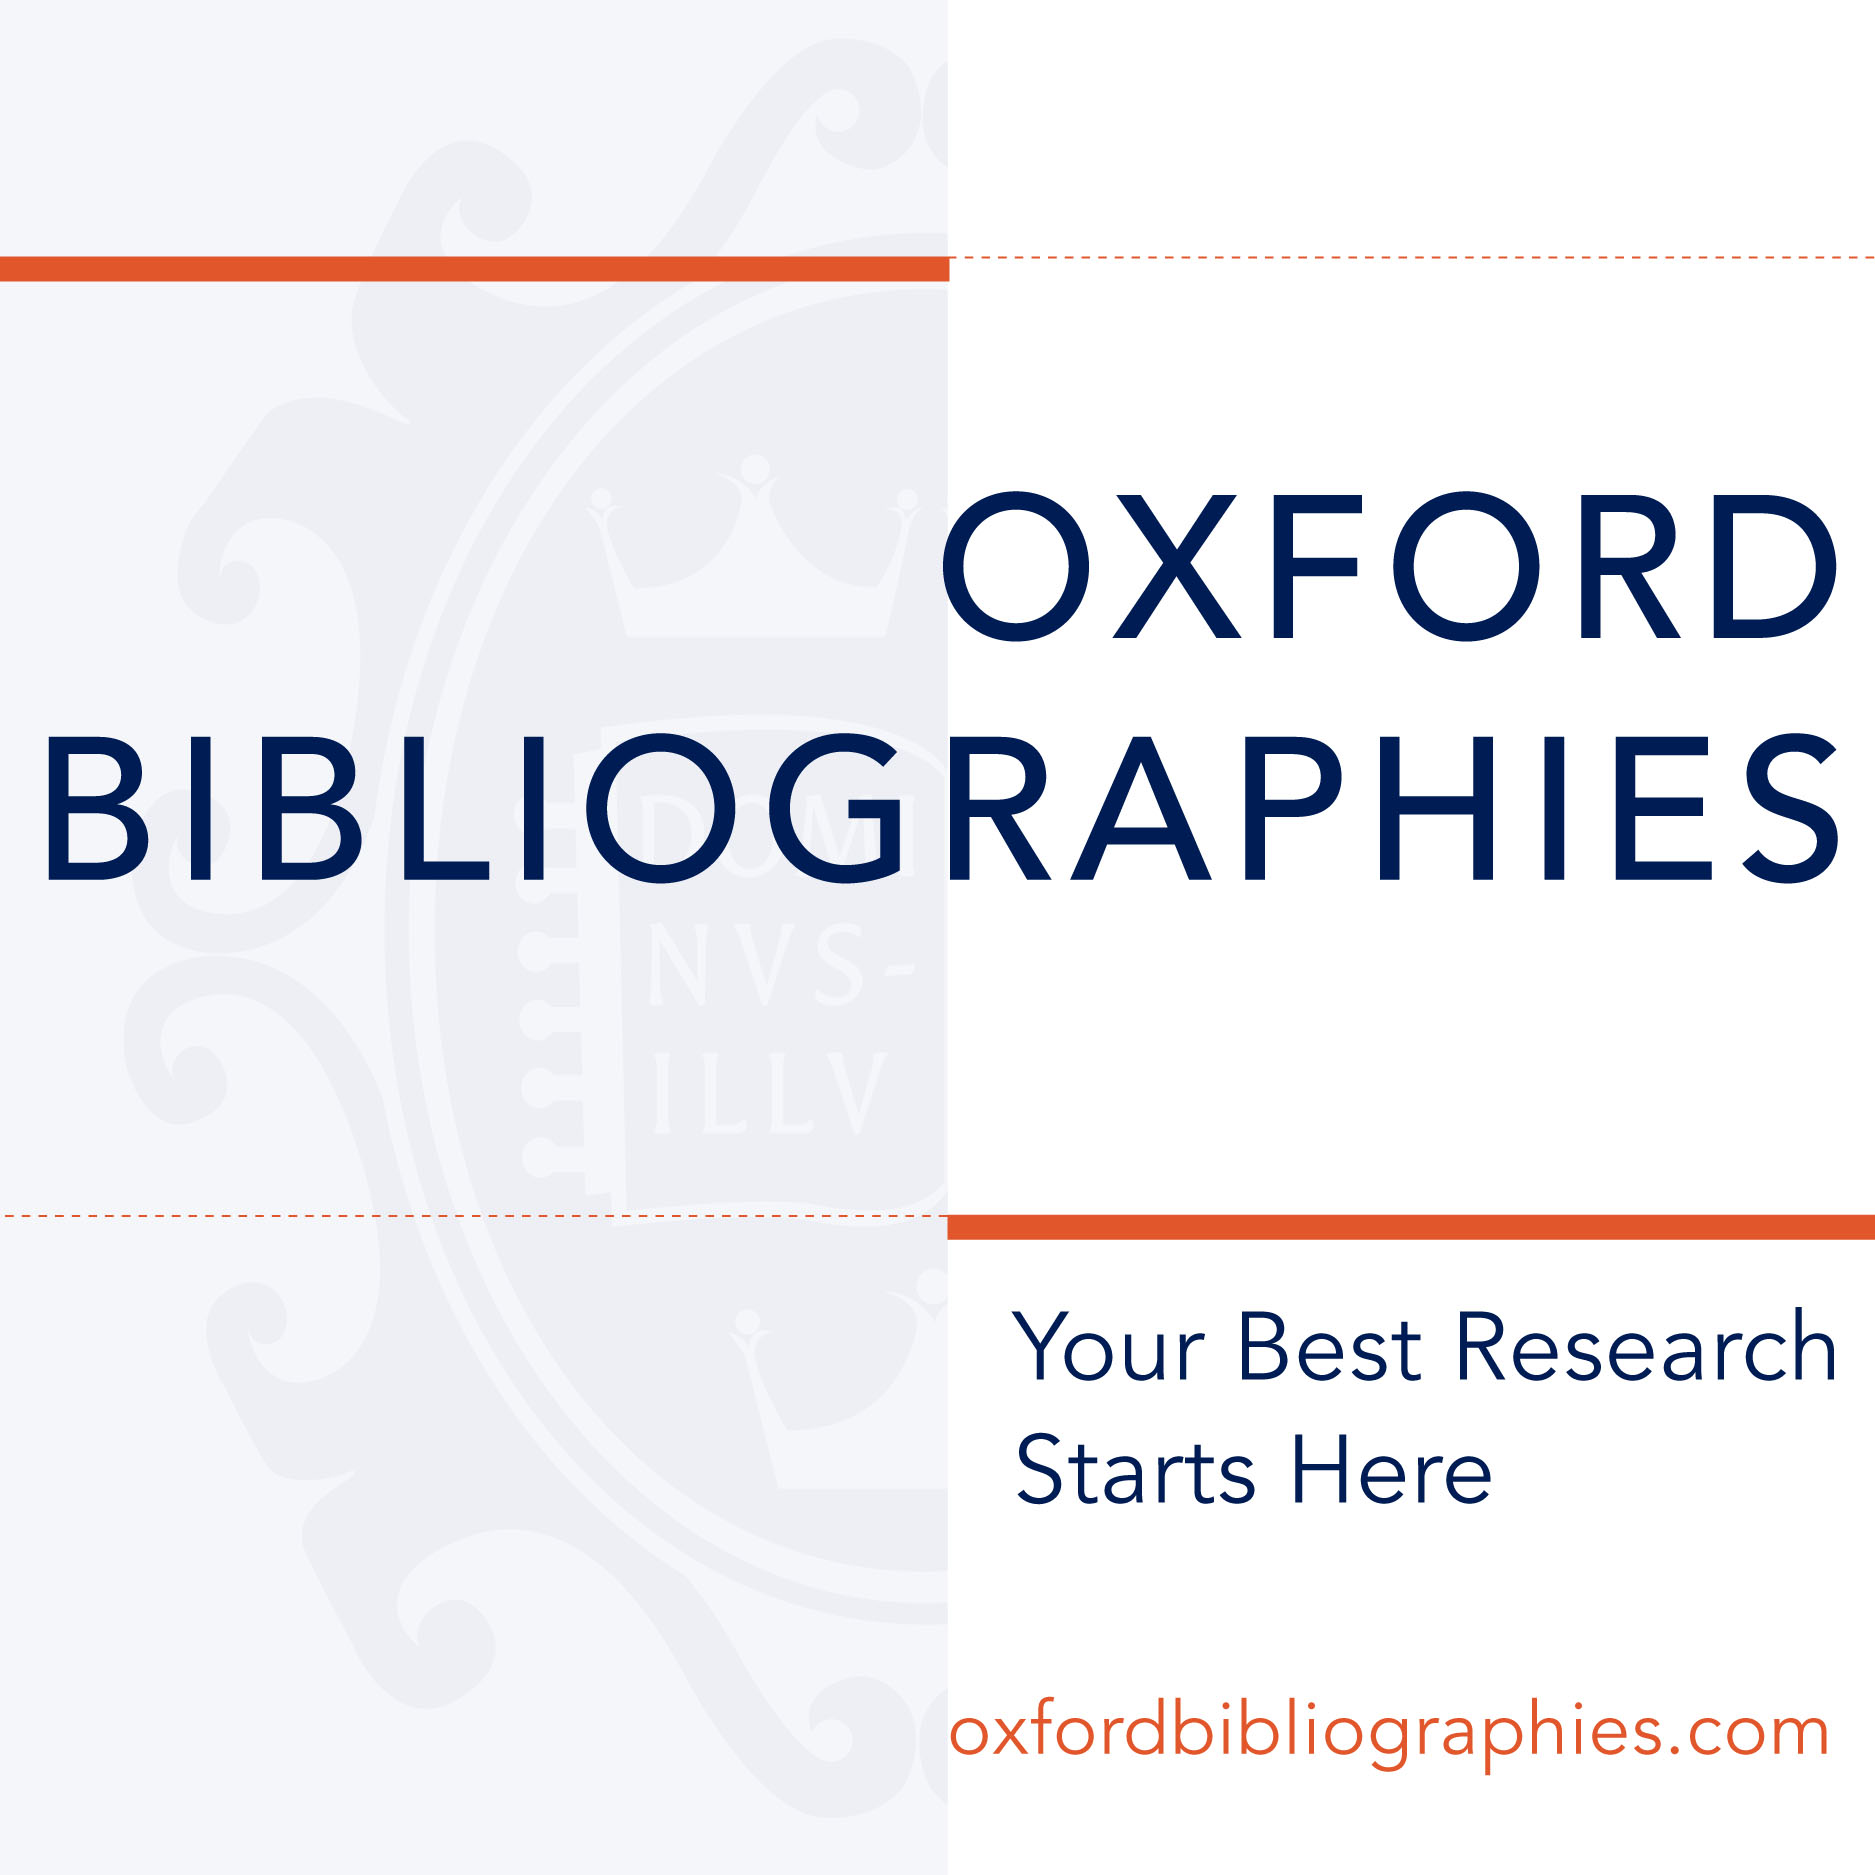 Oxford Bibliographies logo